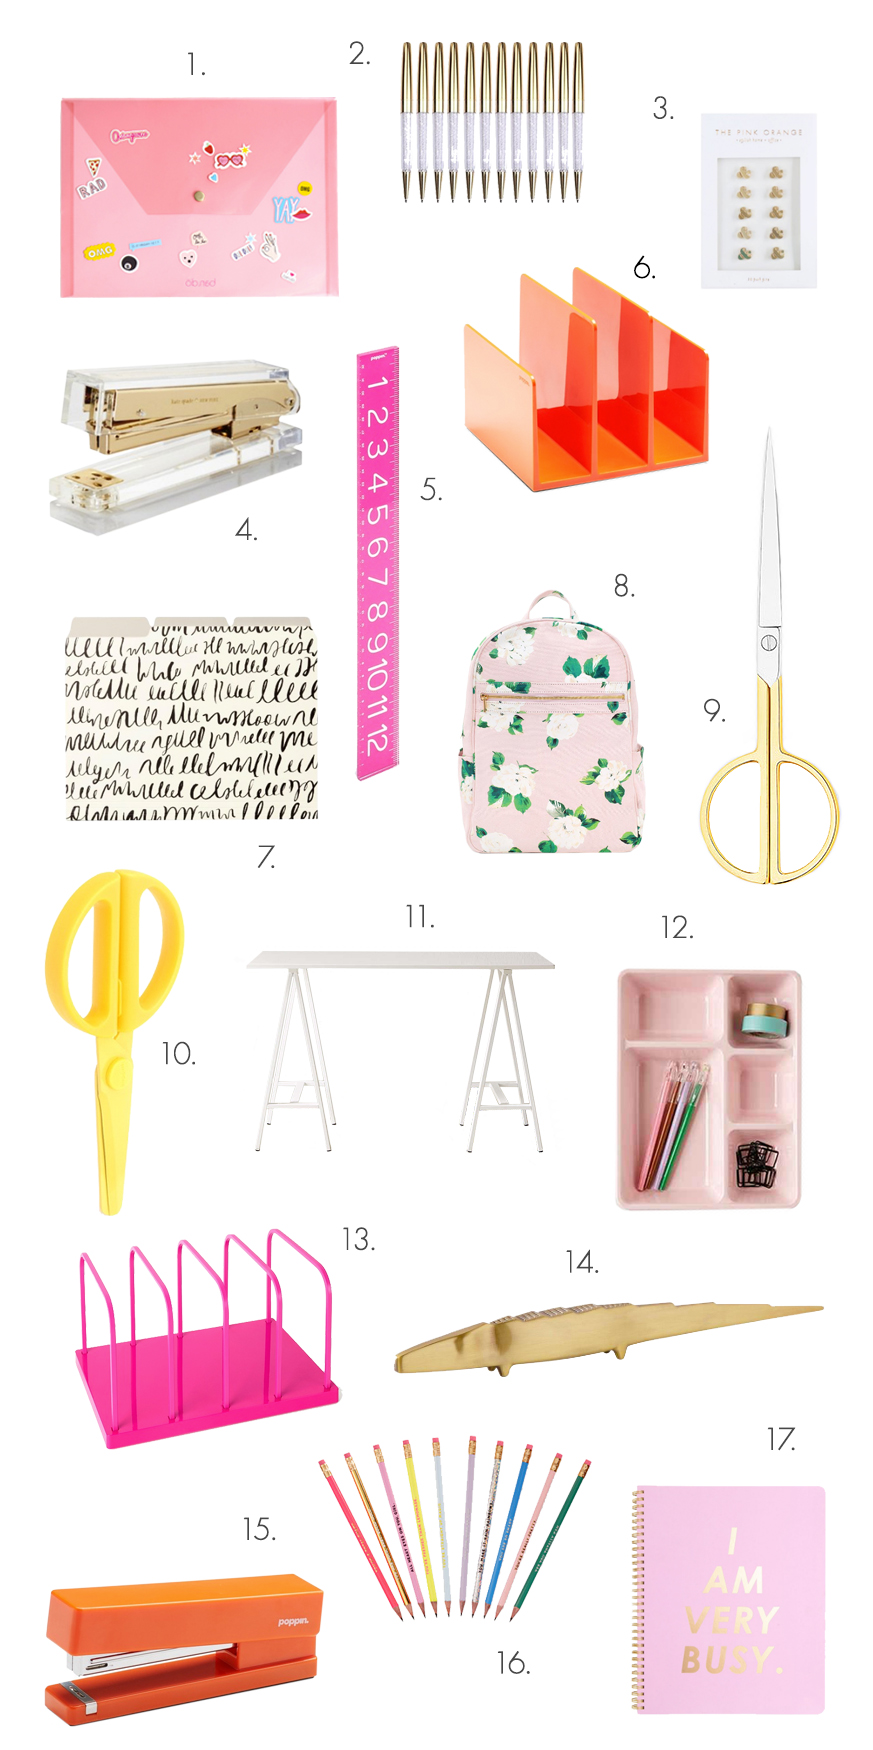 2675c75a070f The Ultimate Back-To-School Shopping List for Grown Ups! - A ...